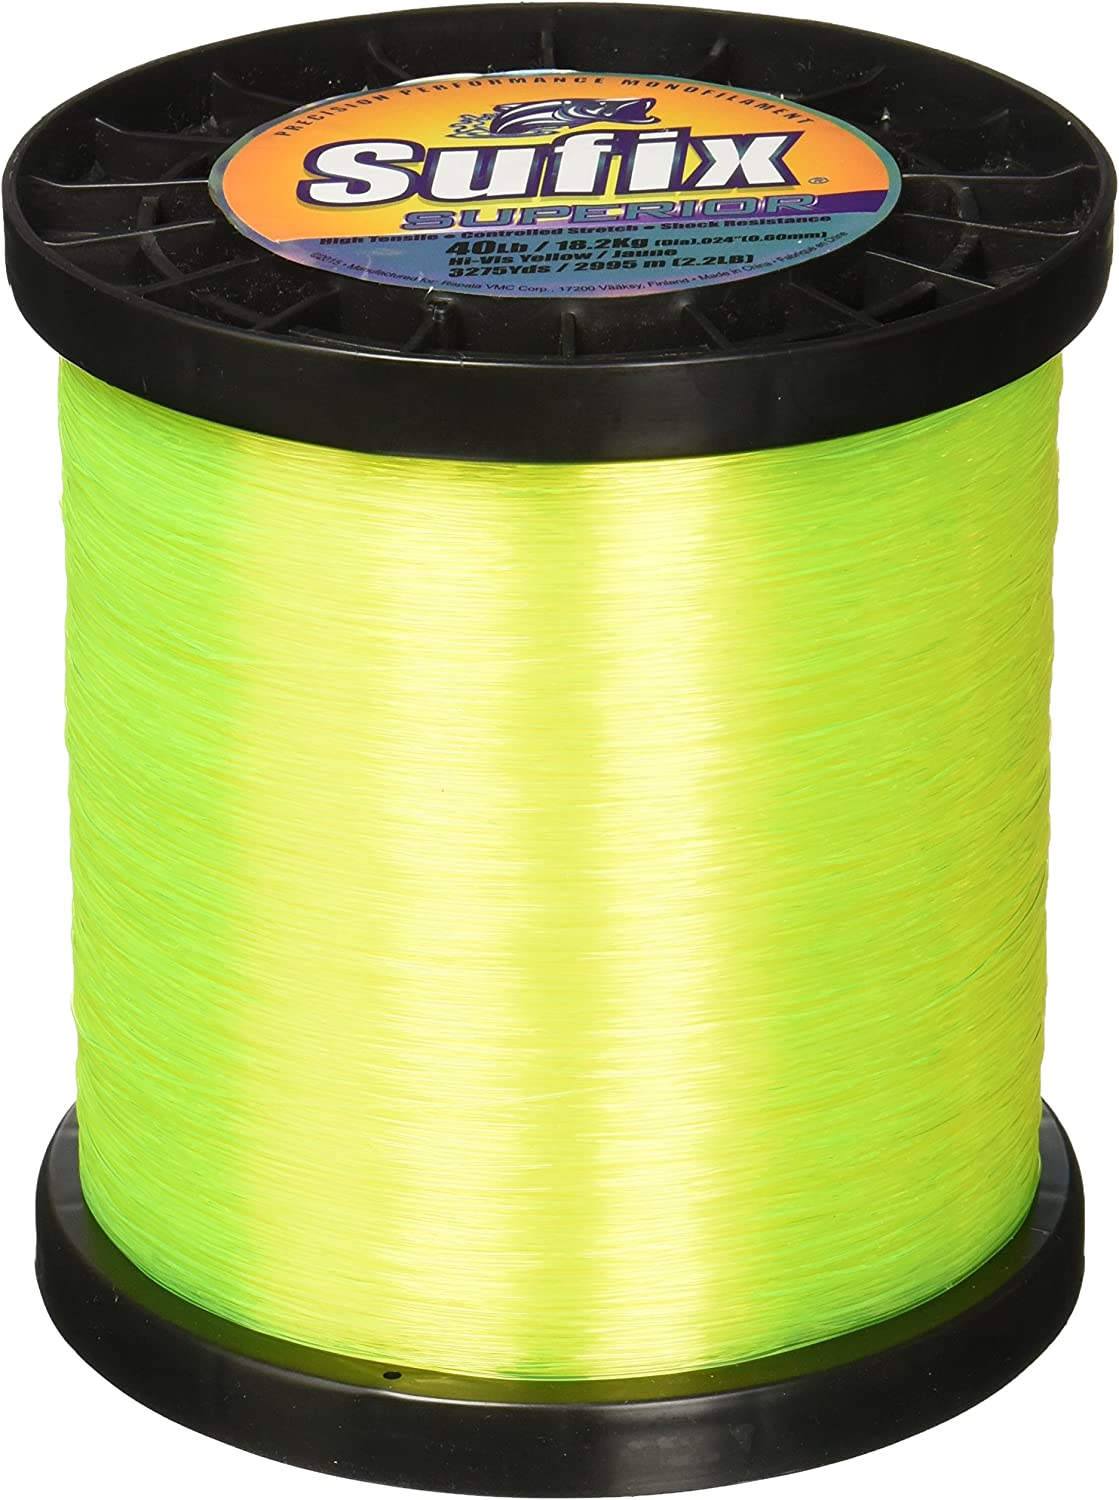 price Sufix Superior Spool Size 40-Pound Fishing Max 68% OFF Yellow Line